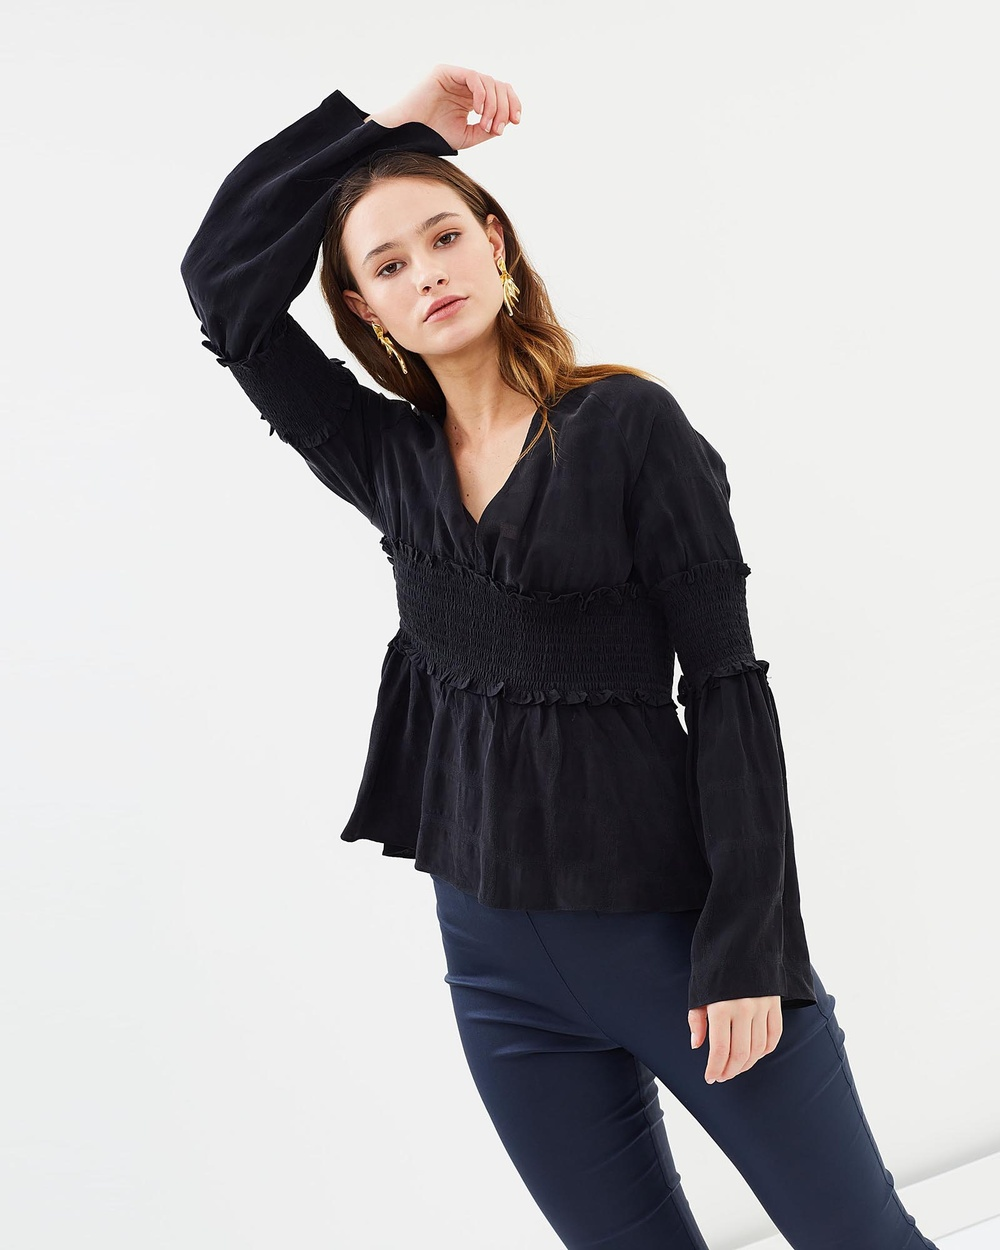 IMONNI Malay Textured Top Tops Black Malay Textured Top